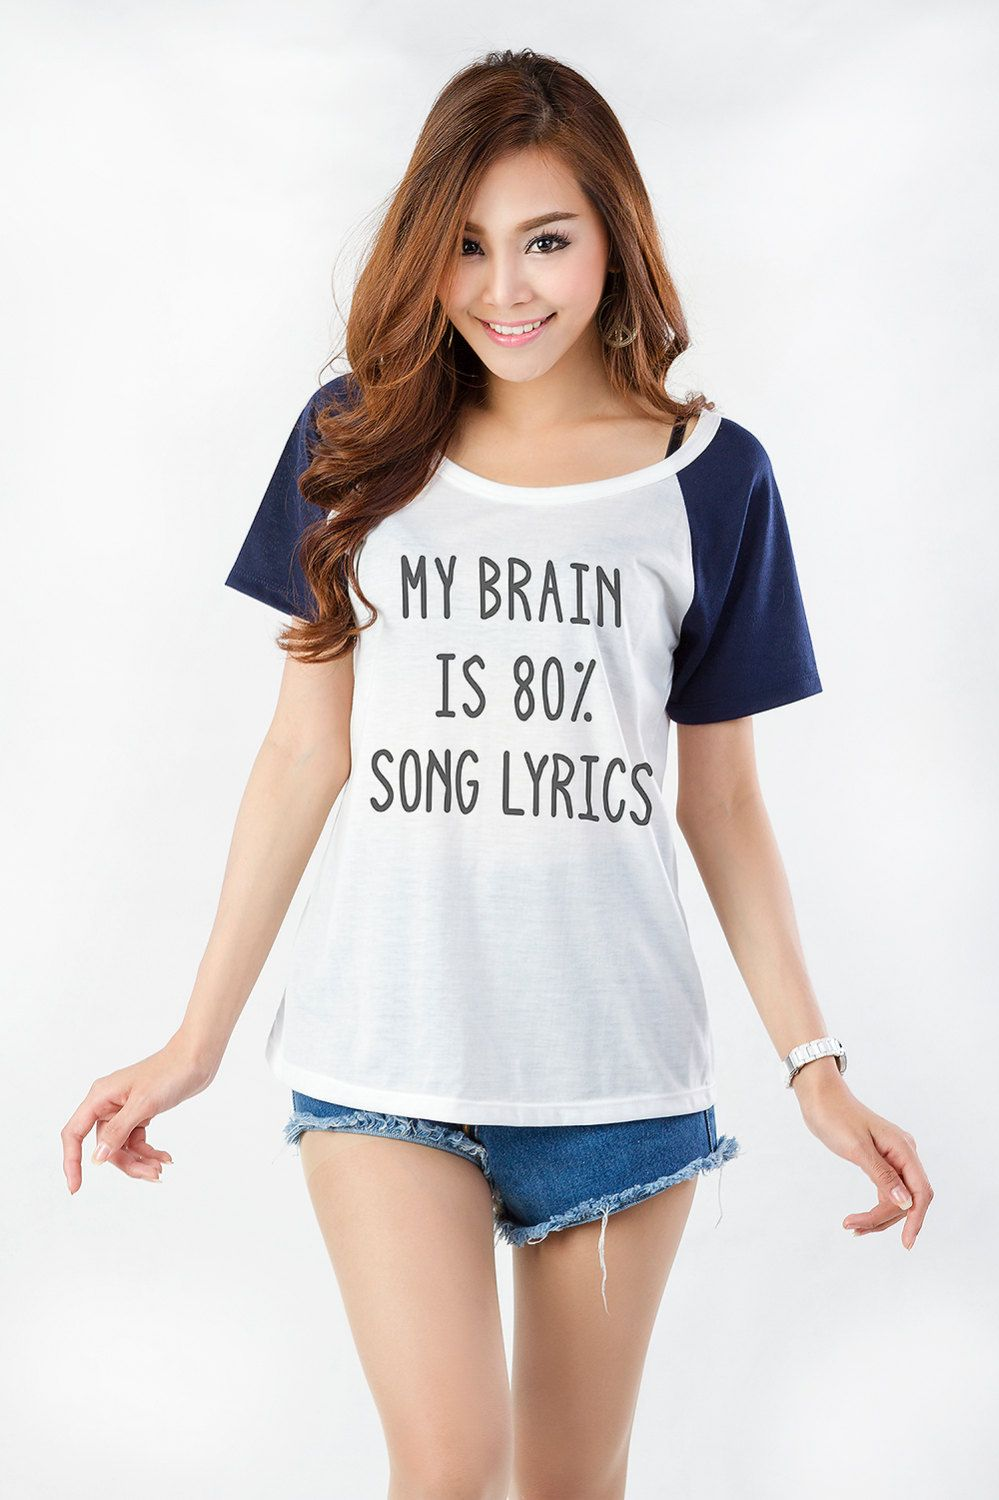 t shirt funny shirts for teen girl gifts text shirt grunge